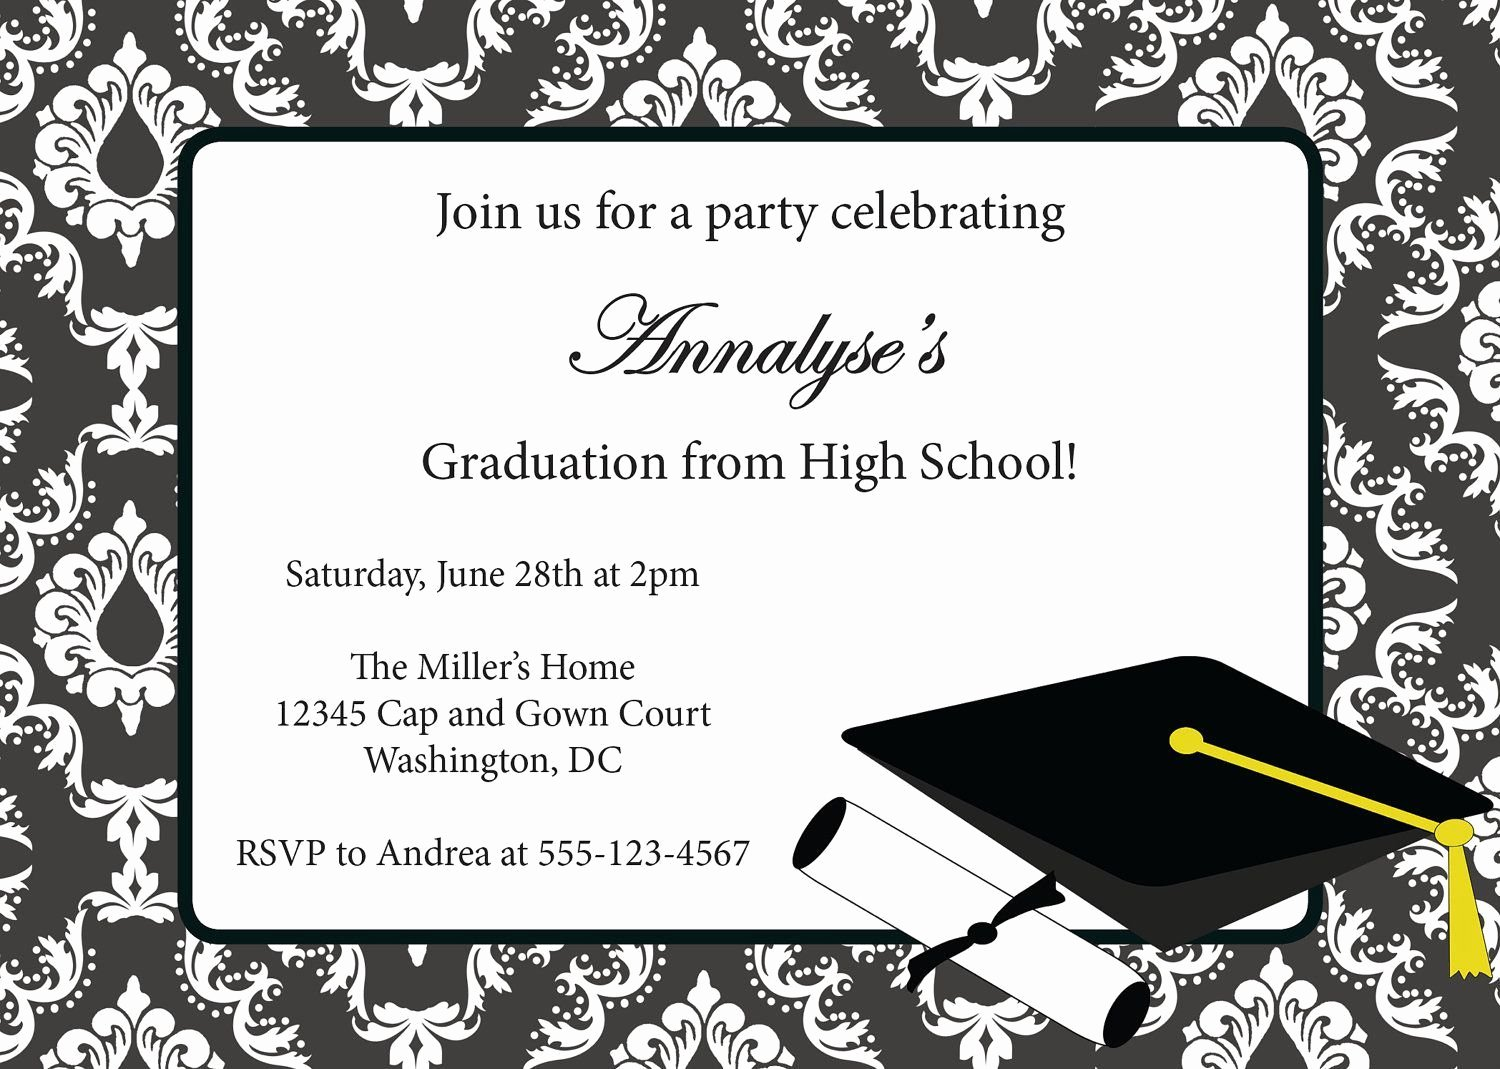 Graduation Party Invitation Template Free Elegant Sample Invitation Card for Graduation Party